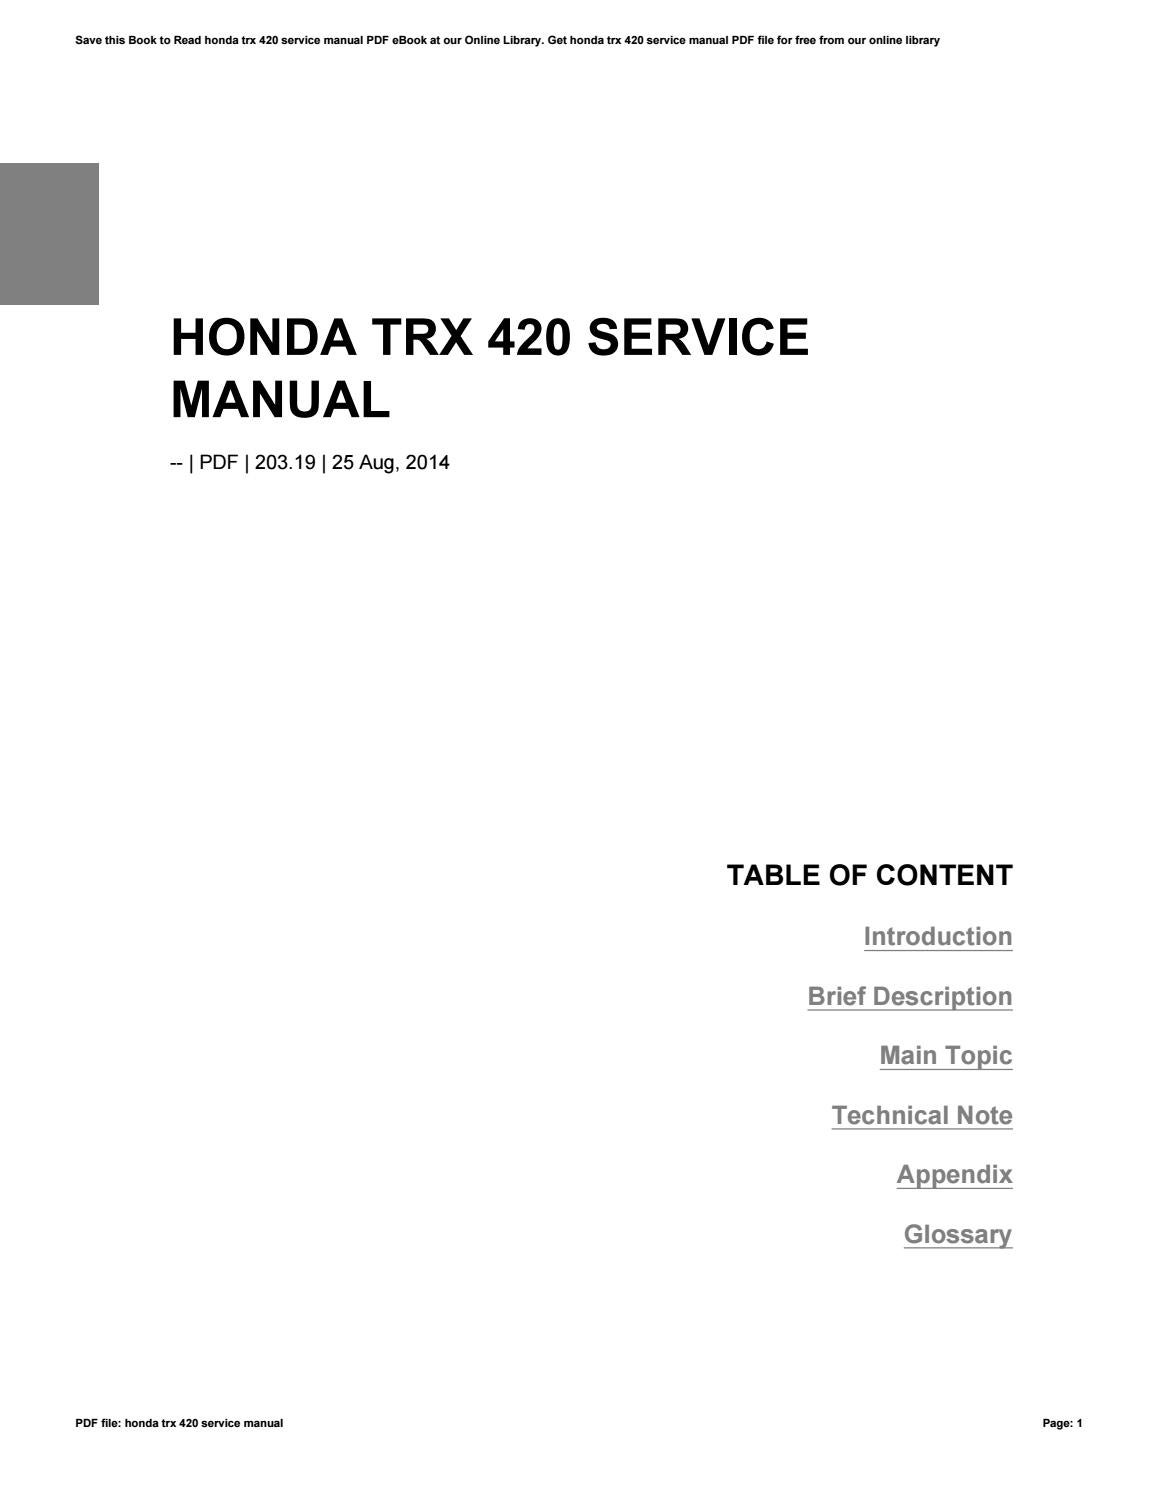 honda trx 420 service manual by aditia26herman